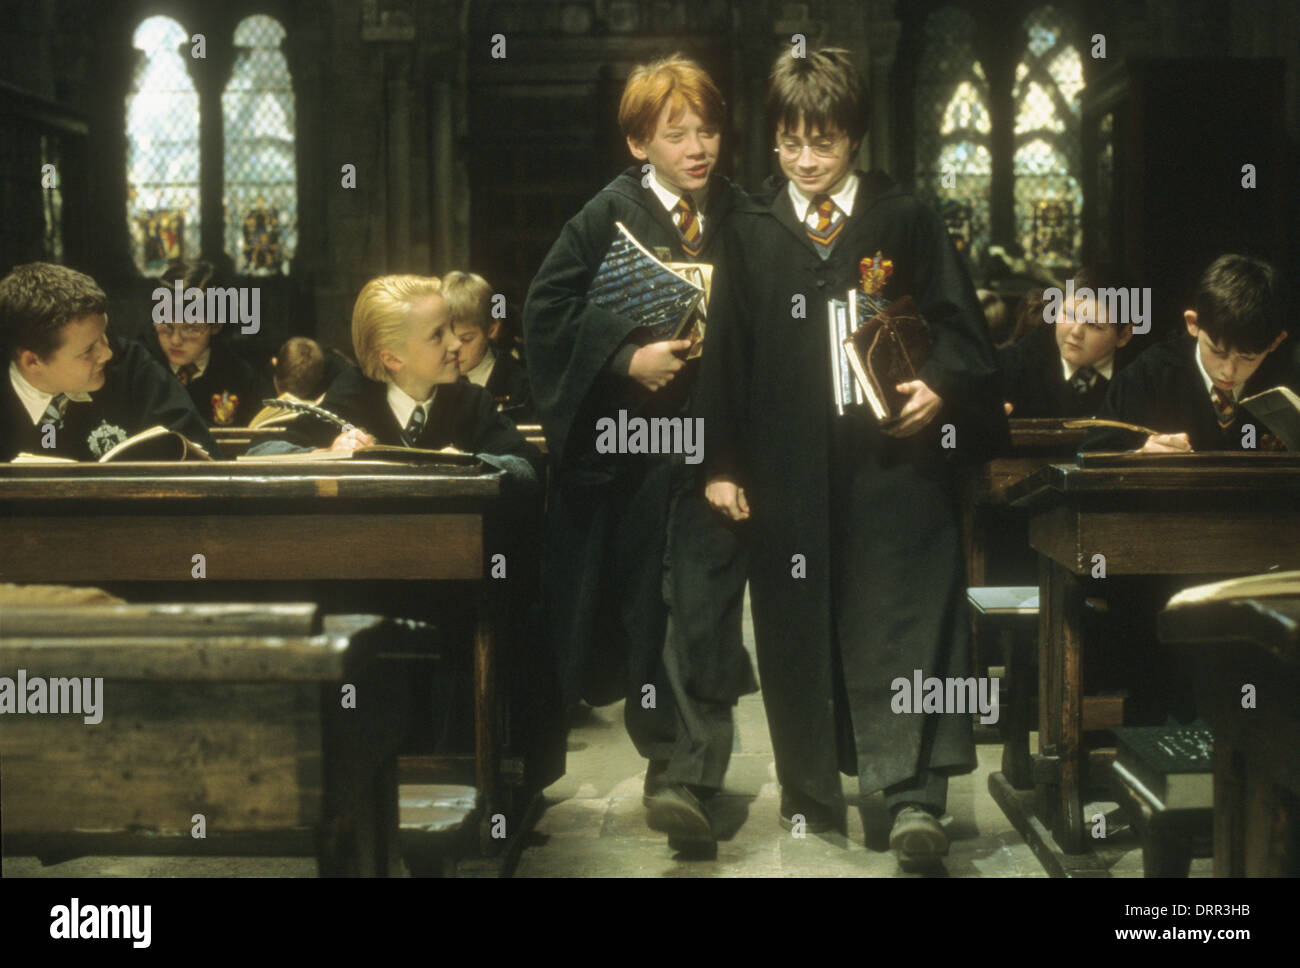 HARRY POTTER AND THE SORCERER'S STONE 2001 Warner Bros film with Rupert Grint centre left and Daniel Radcliffe - Stock Image